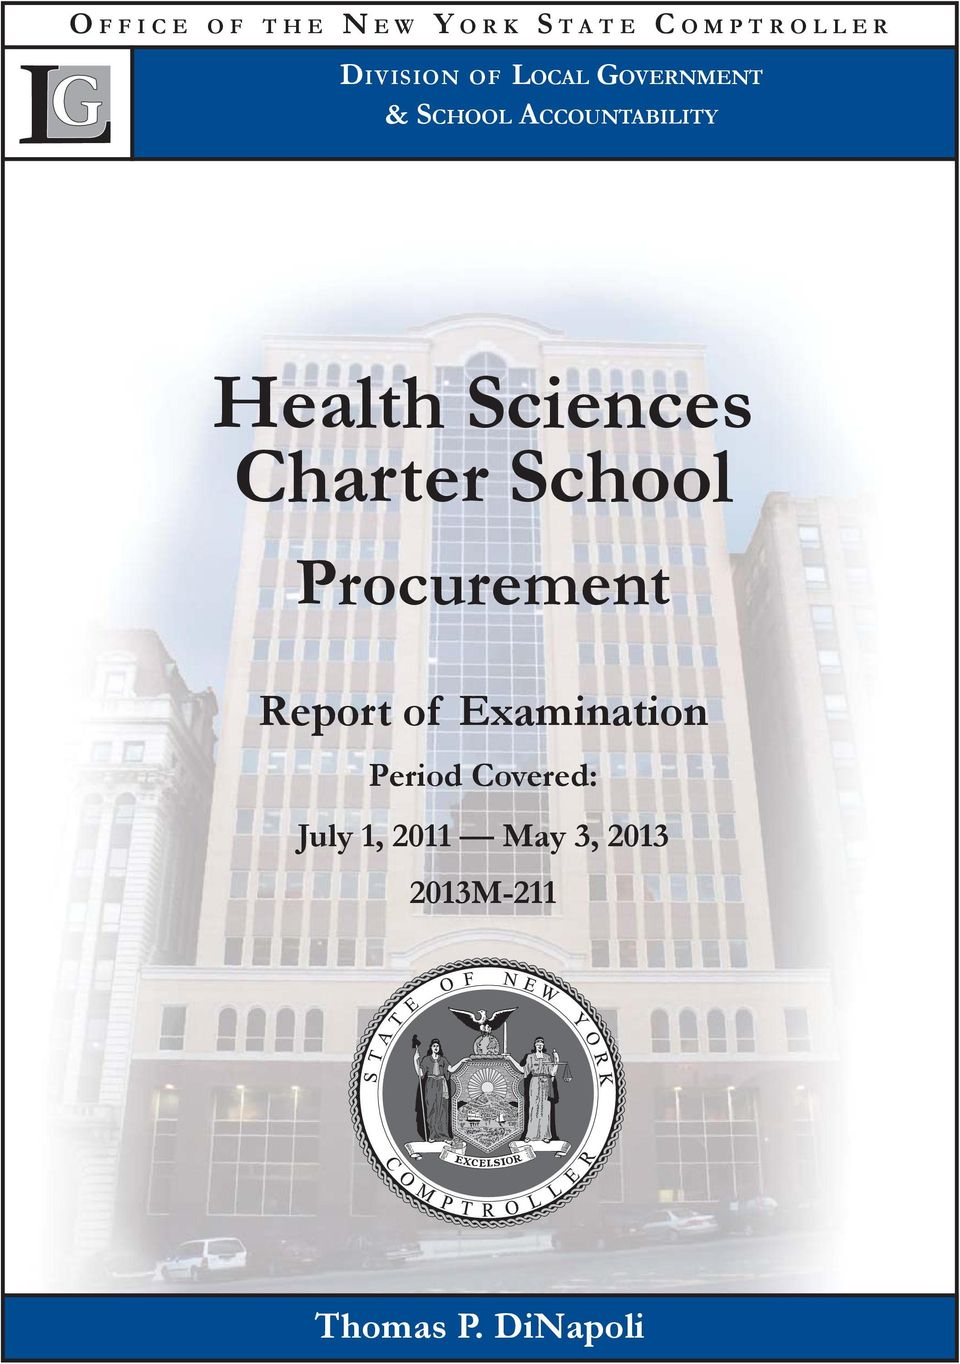 Charter School Procurement Report of Examination Period